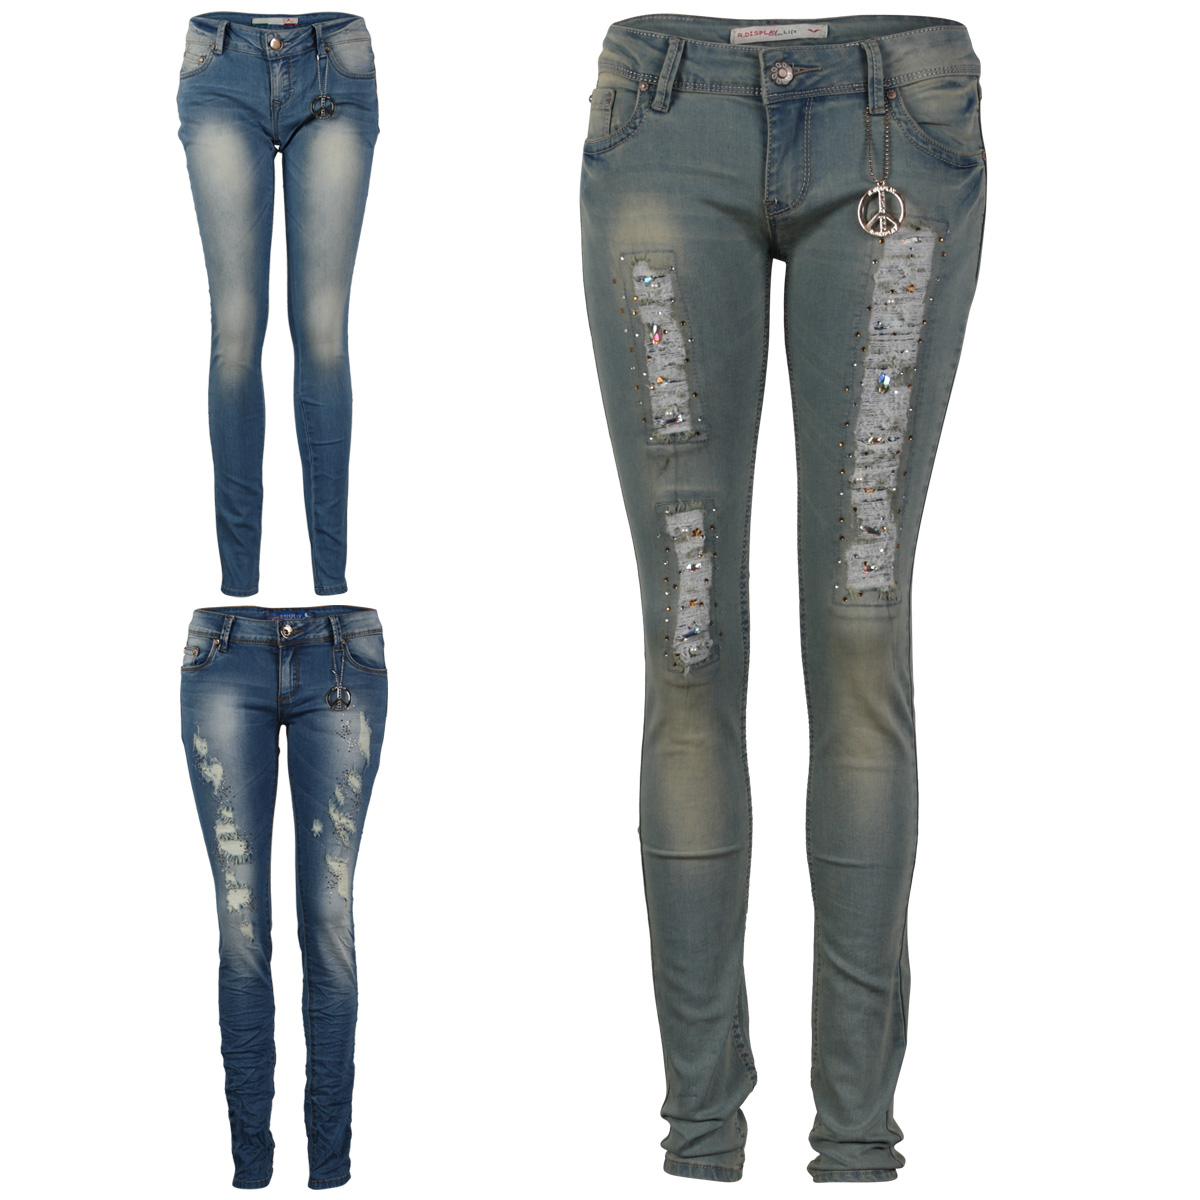 damen blaue frauen verzierte skinny enge zerrissene jeans hose gr 34 42 ebay. Black Bedroom Furniture Sets. Home Design Ideas